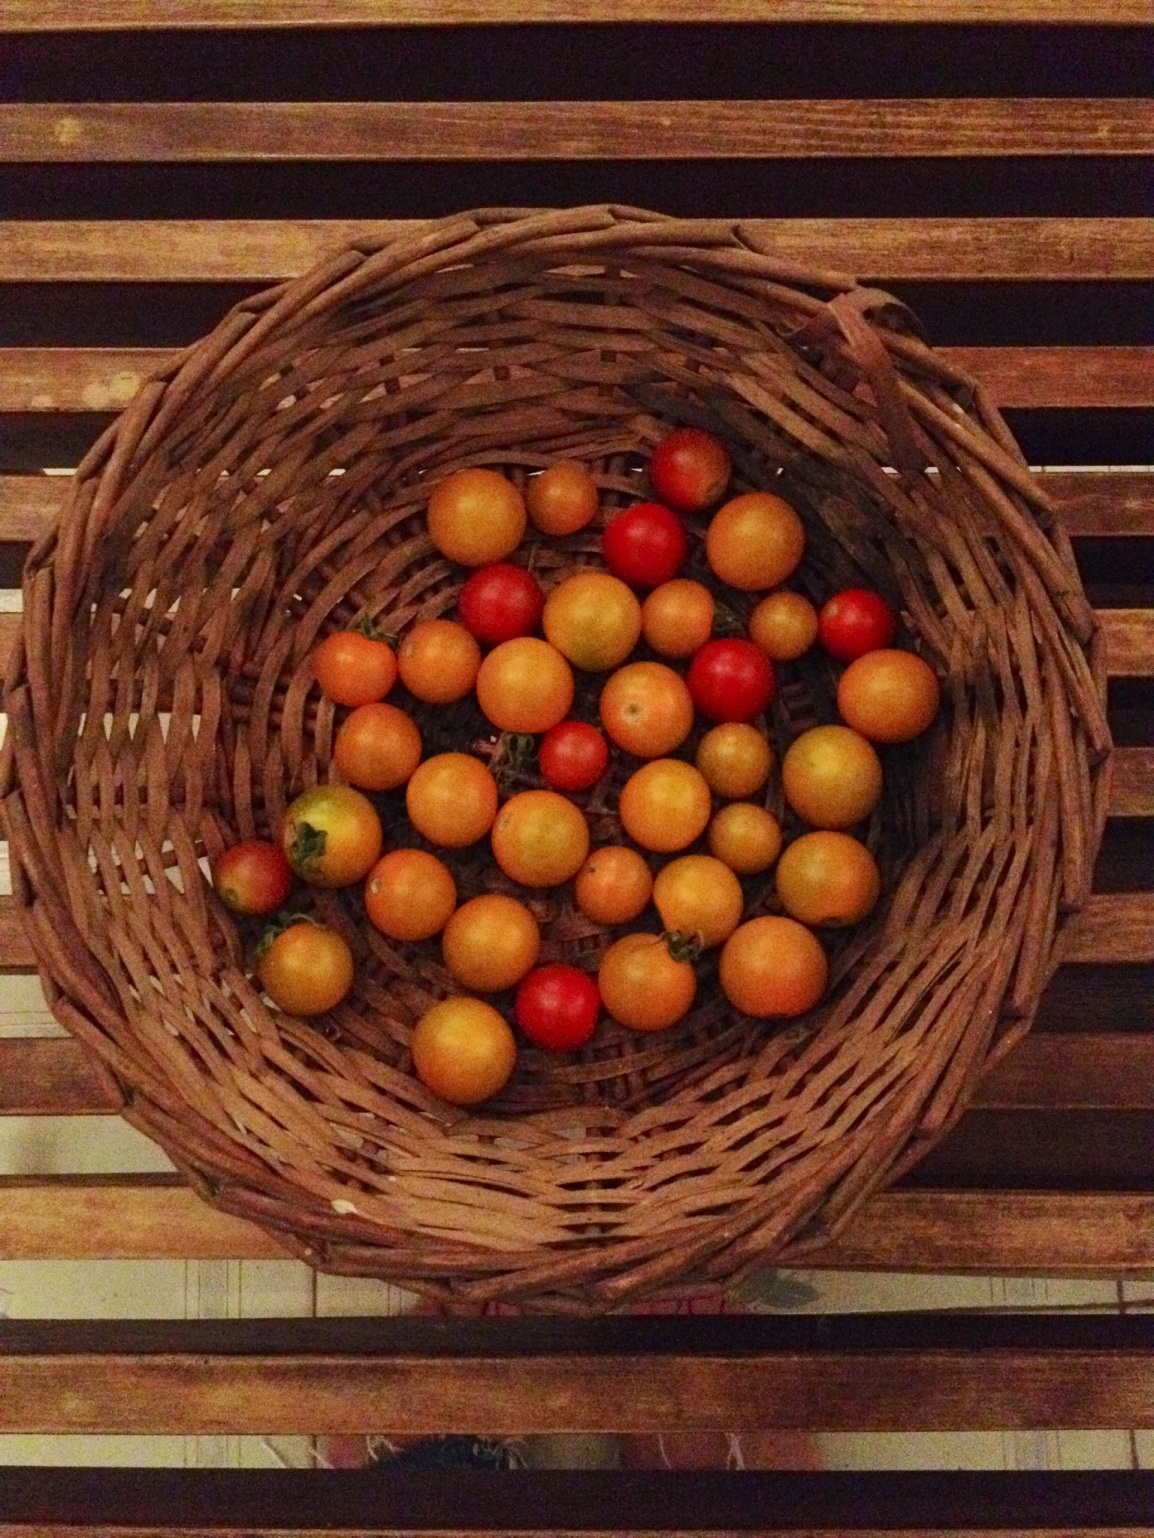 A view from above of a basket with a few early cherry tomatoes in various colors.